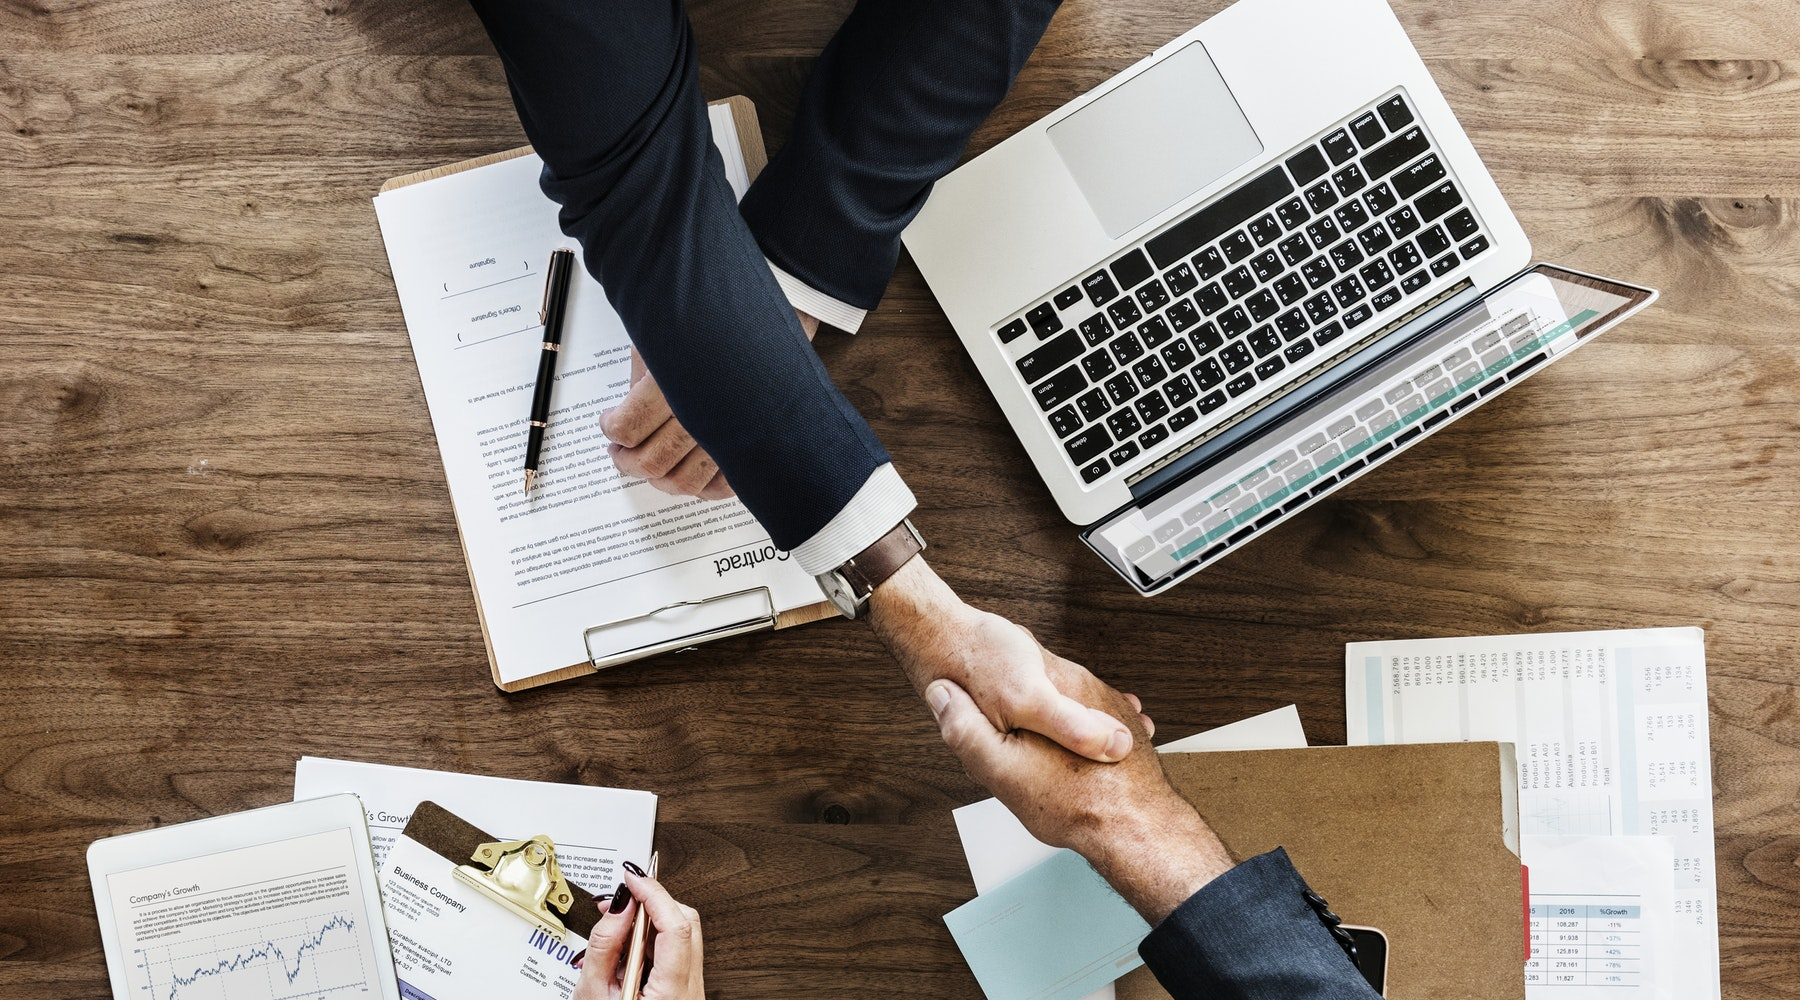 Want To Get Paid What You Deserve? Learn All The Salary Negotiation Techniques From This Free Course